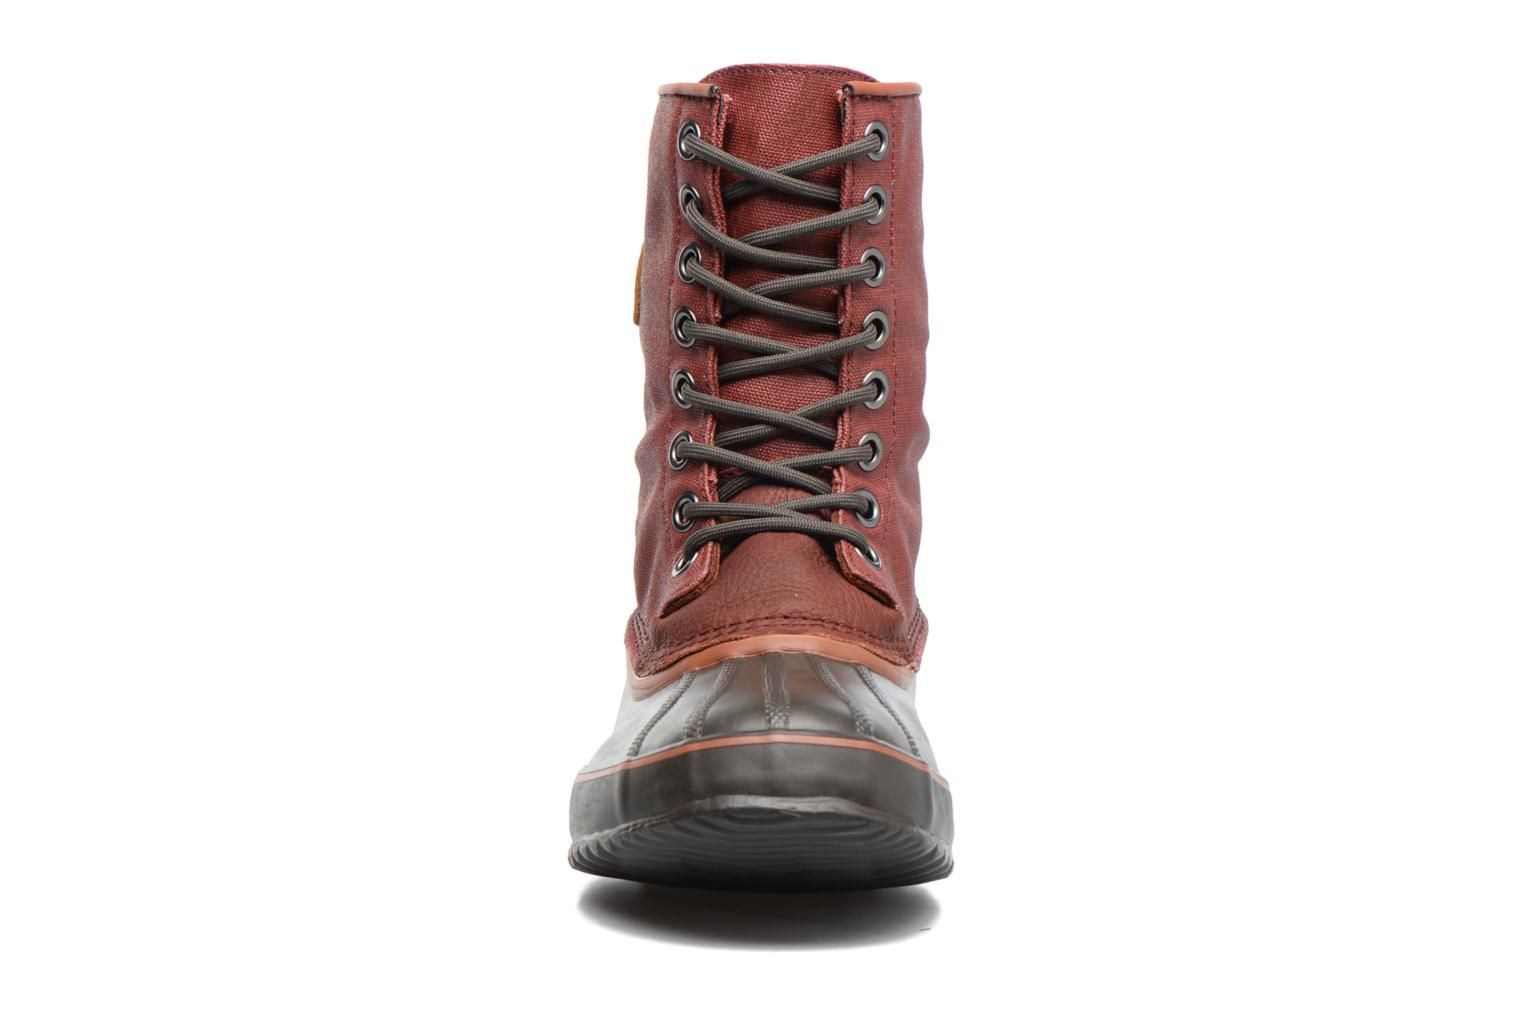 Sportschoenen Sorel 1964 Premium T Cvs Bordeaux model